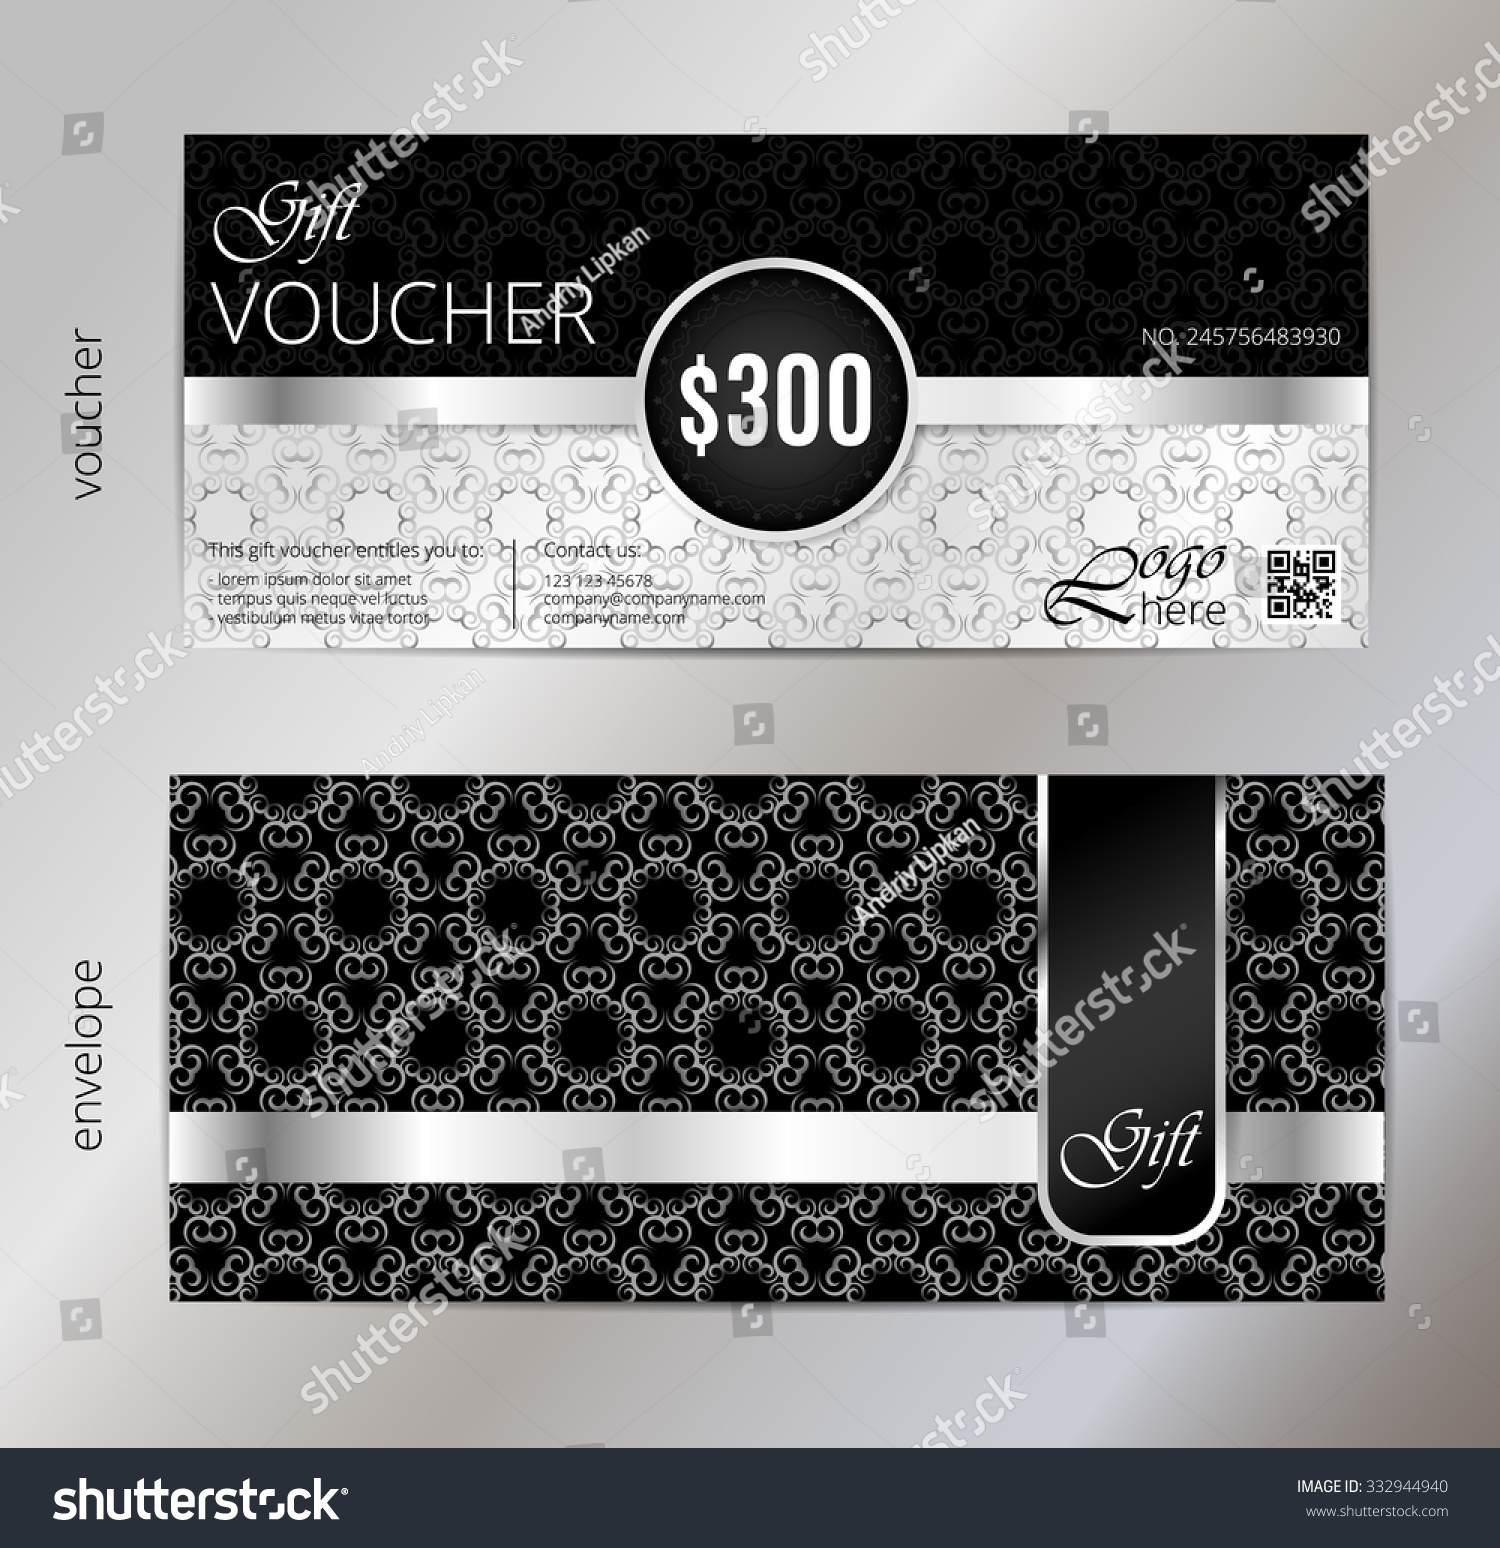 Silver vip club card luxury gift stock vector 332944940 shutterstock silver vip club card luxury gift certificate gift voucher vector illustration black and negle Gallery